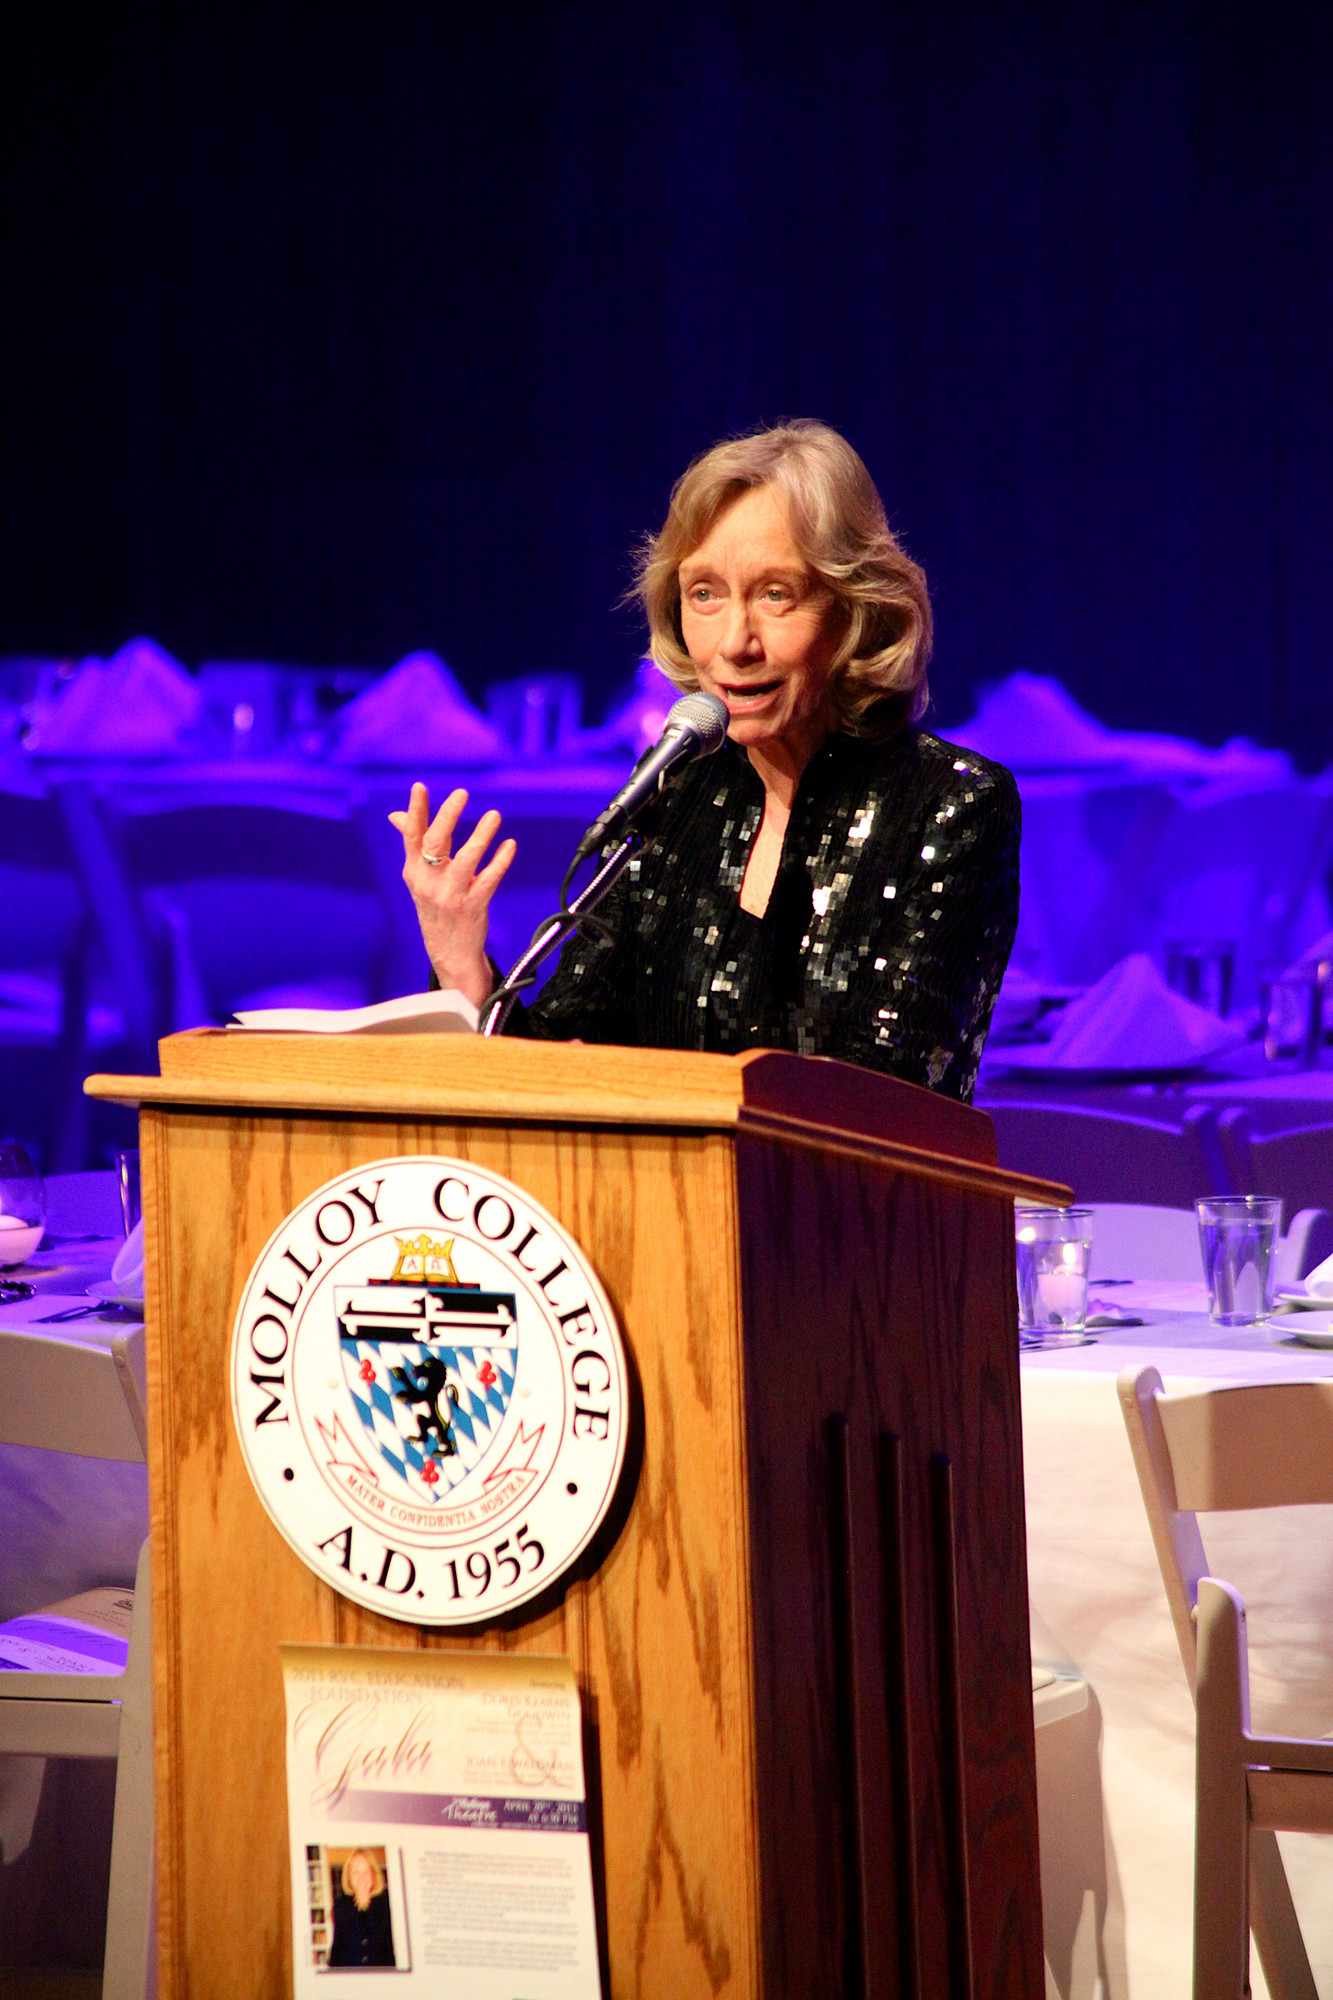 Doris Kearns Goodwin gave a speech after being honored.